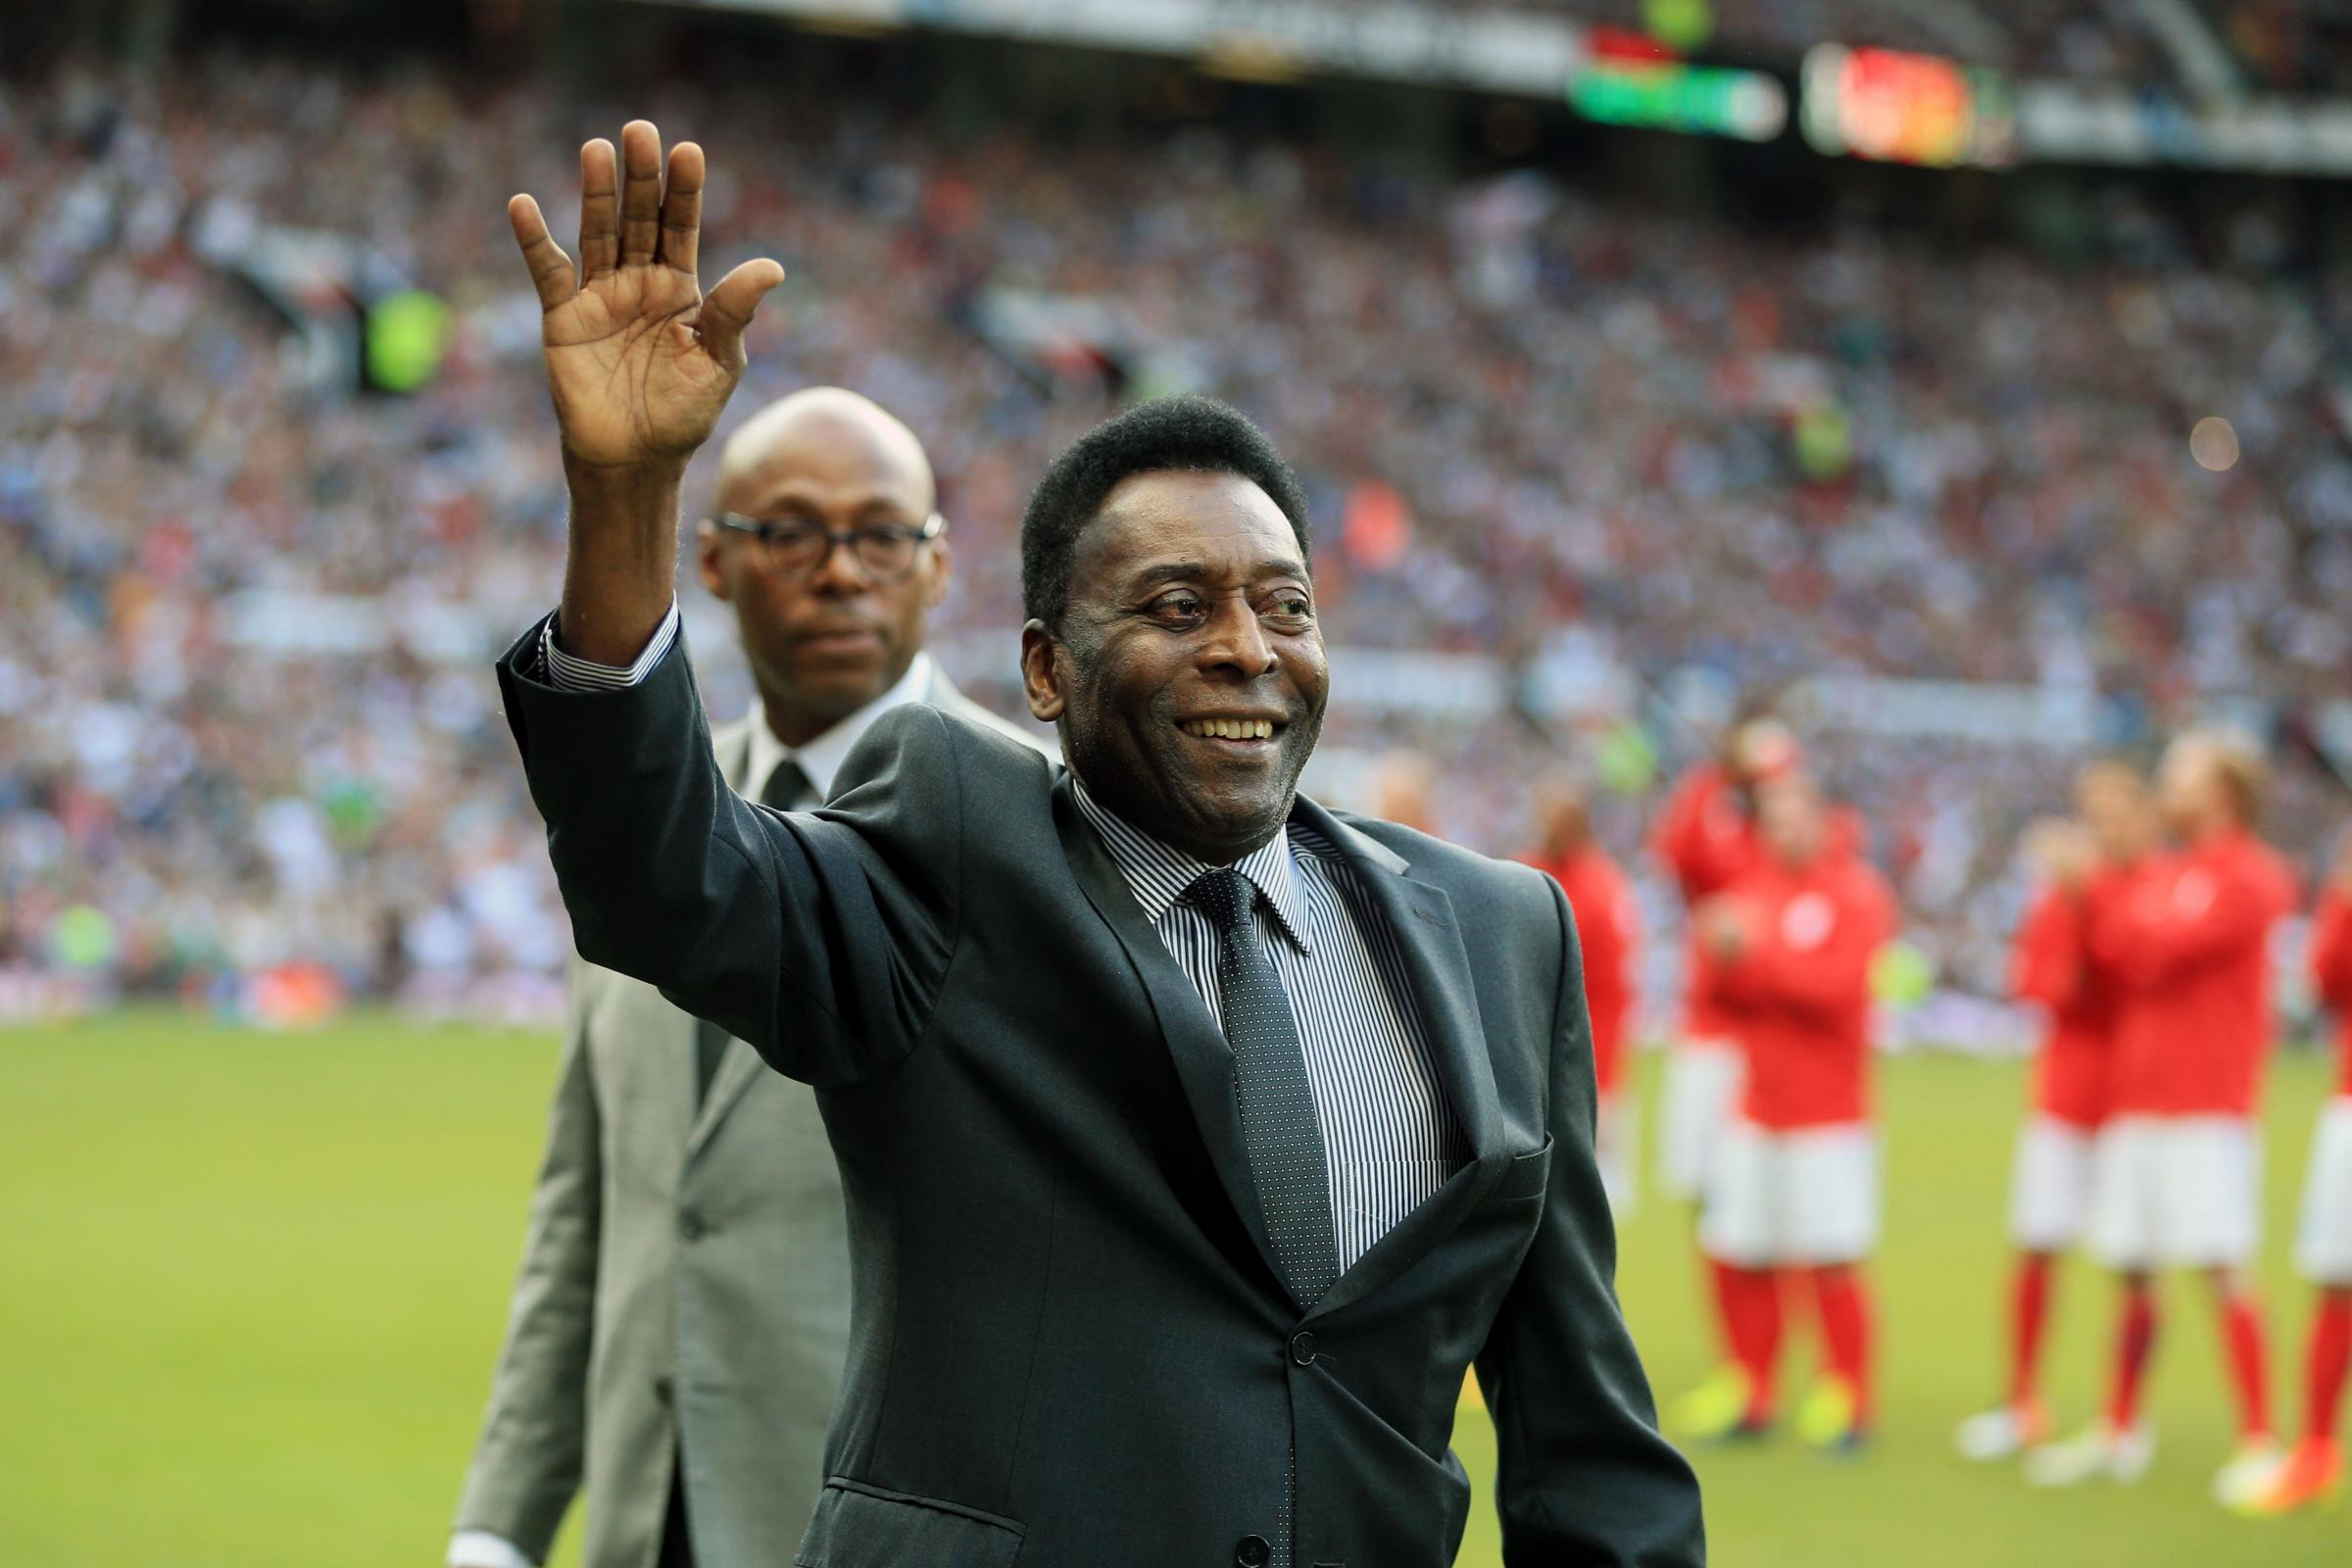 New film highlights the doubts about Pele ahead of Brazil's 1970 World Cup  win | Alloa and Hillfoots Advertiser